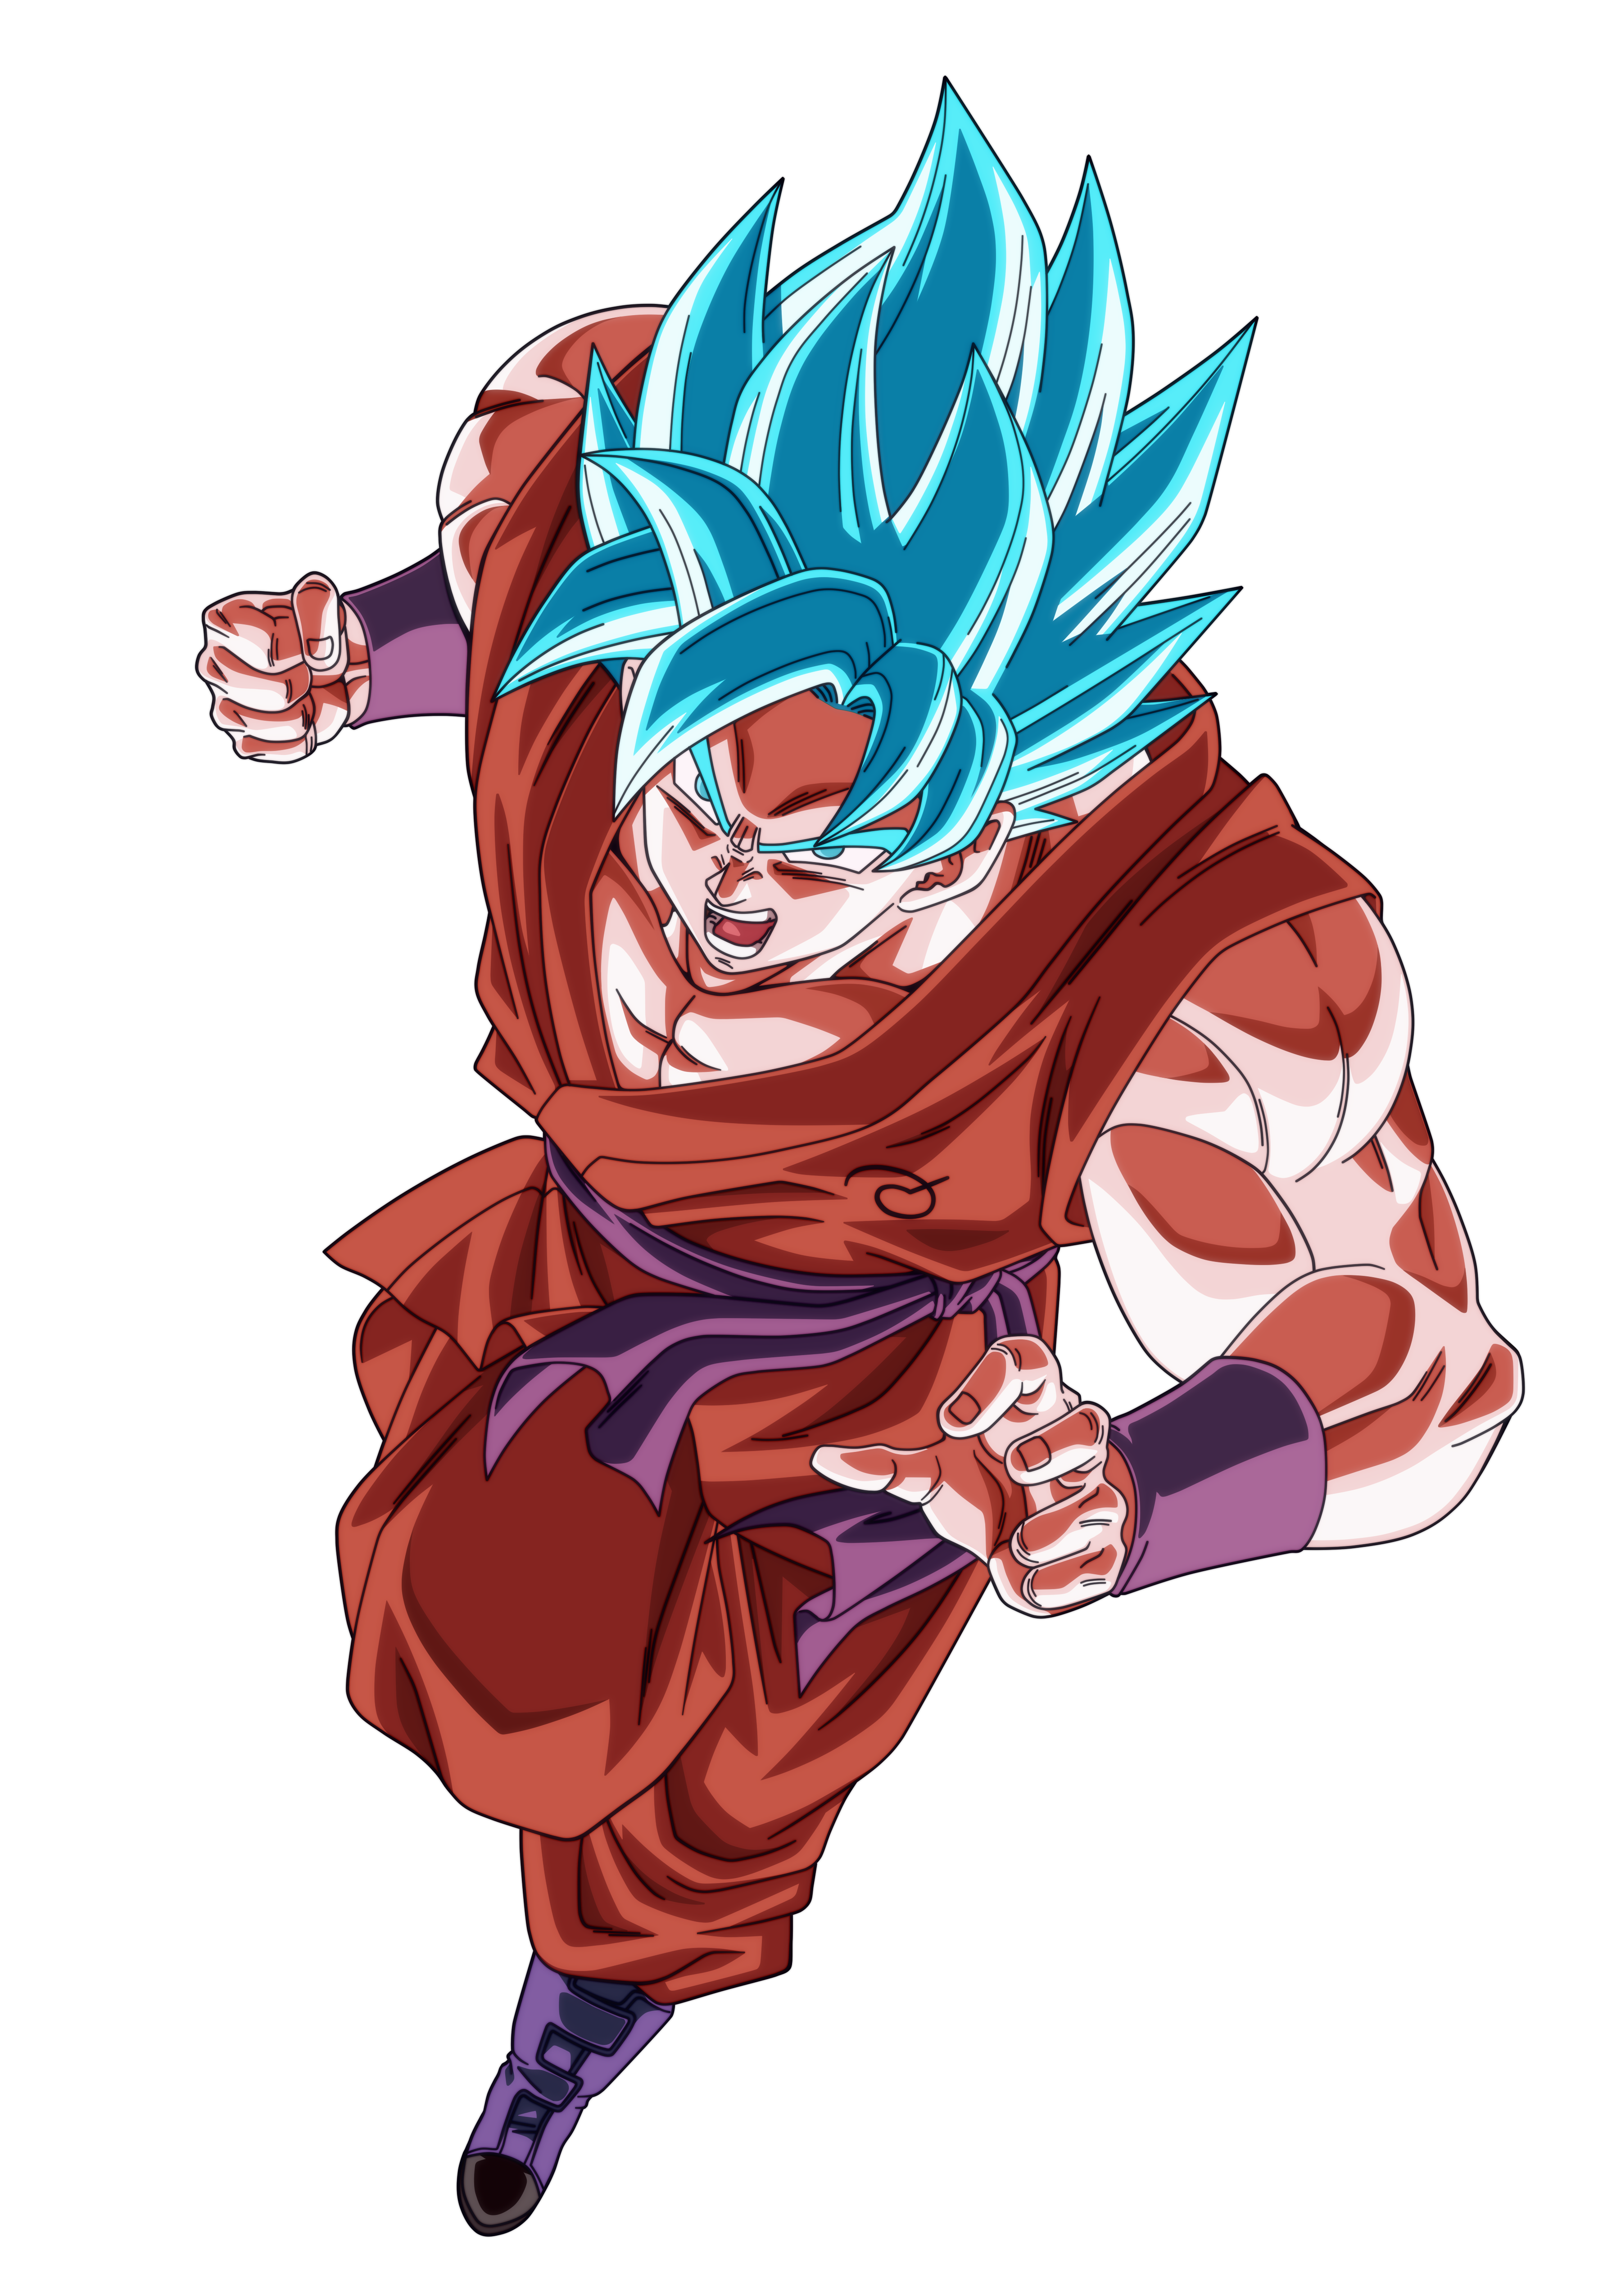 Goku Blue Charges Angry Render.png